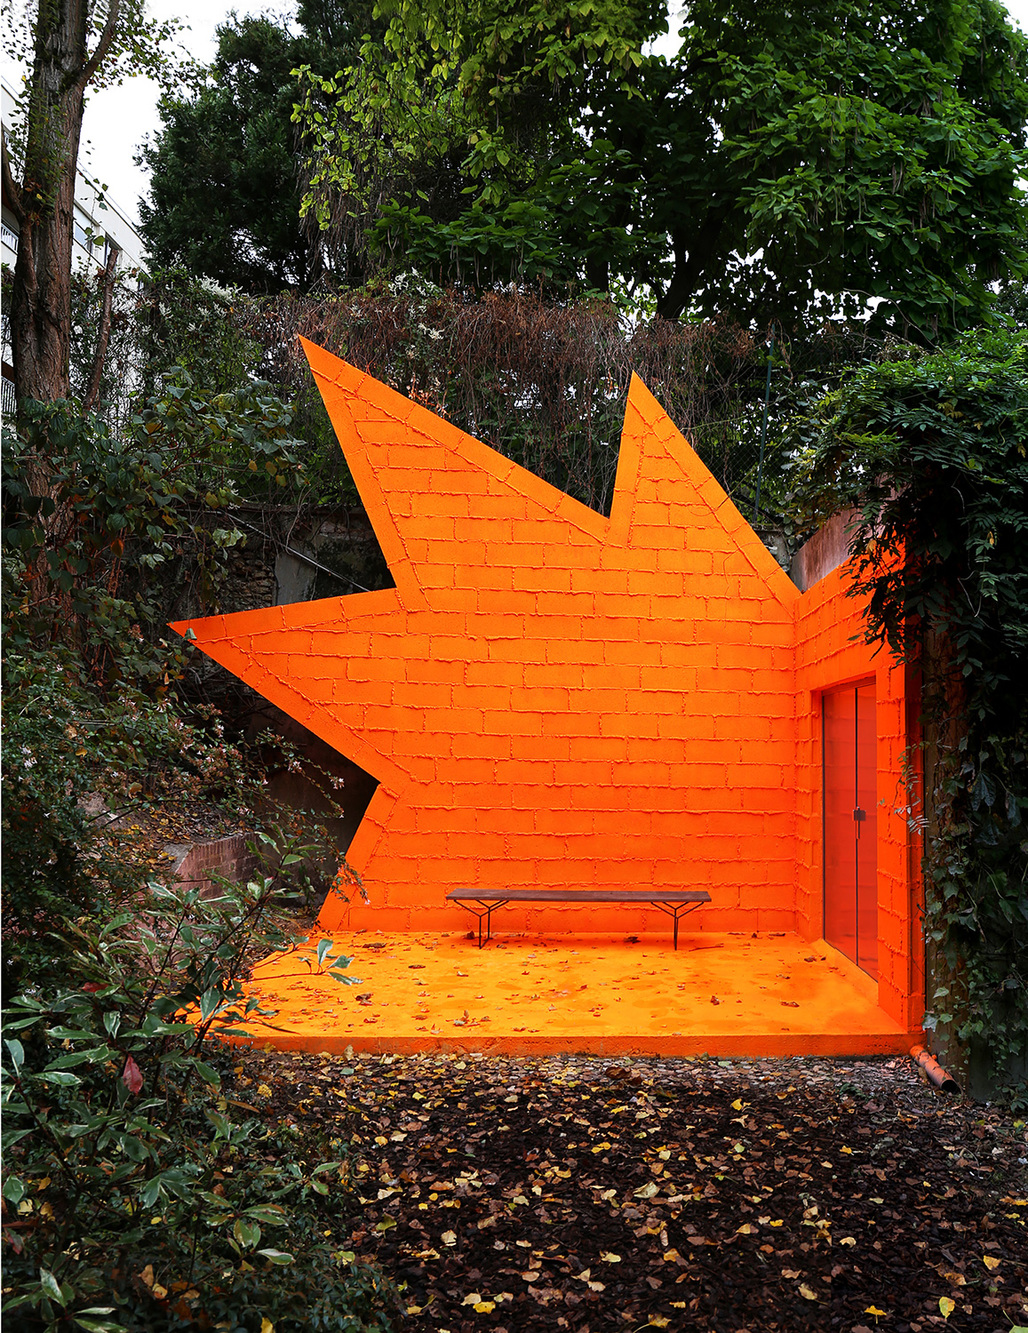 Didier Faustino, This is Not a Love Song, 2014, Meudon, France. From the 2015 Individual Grant to Didier Faustino for Mis/Architecture(s).